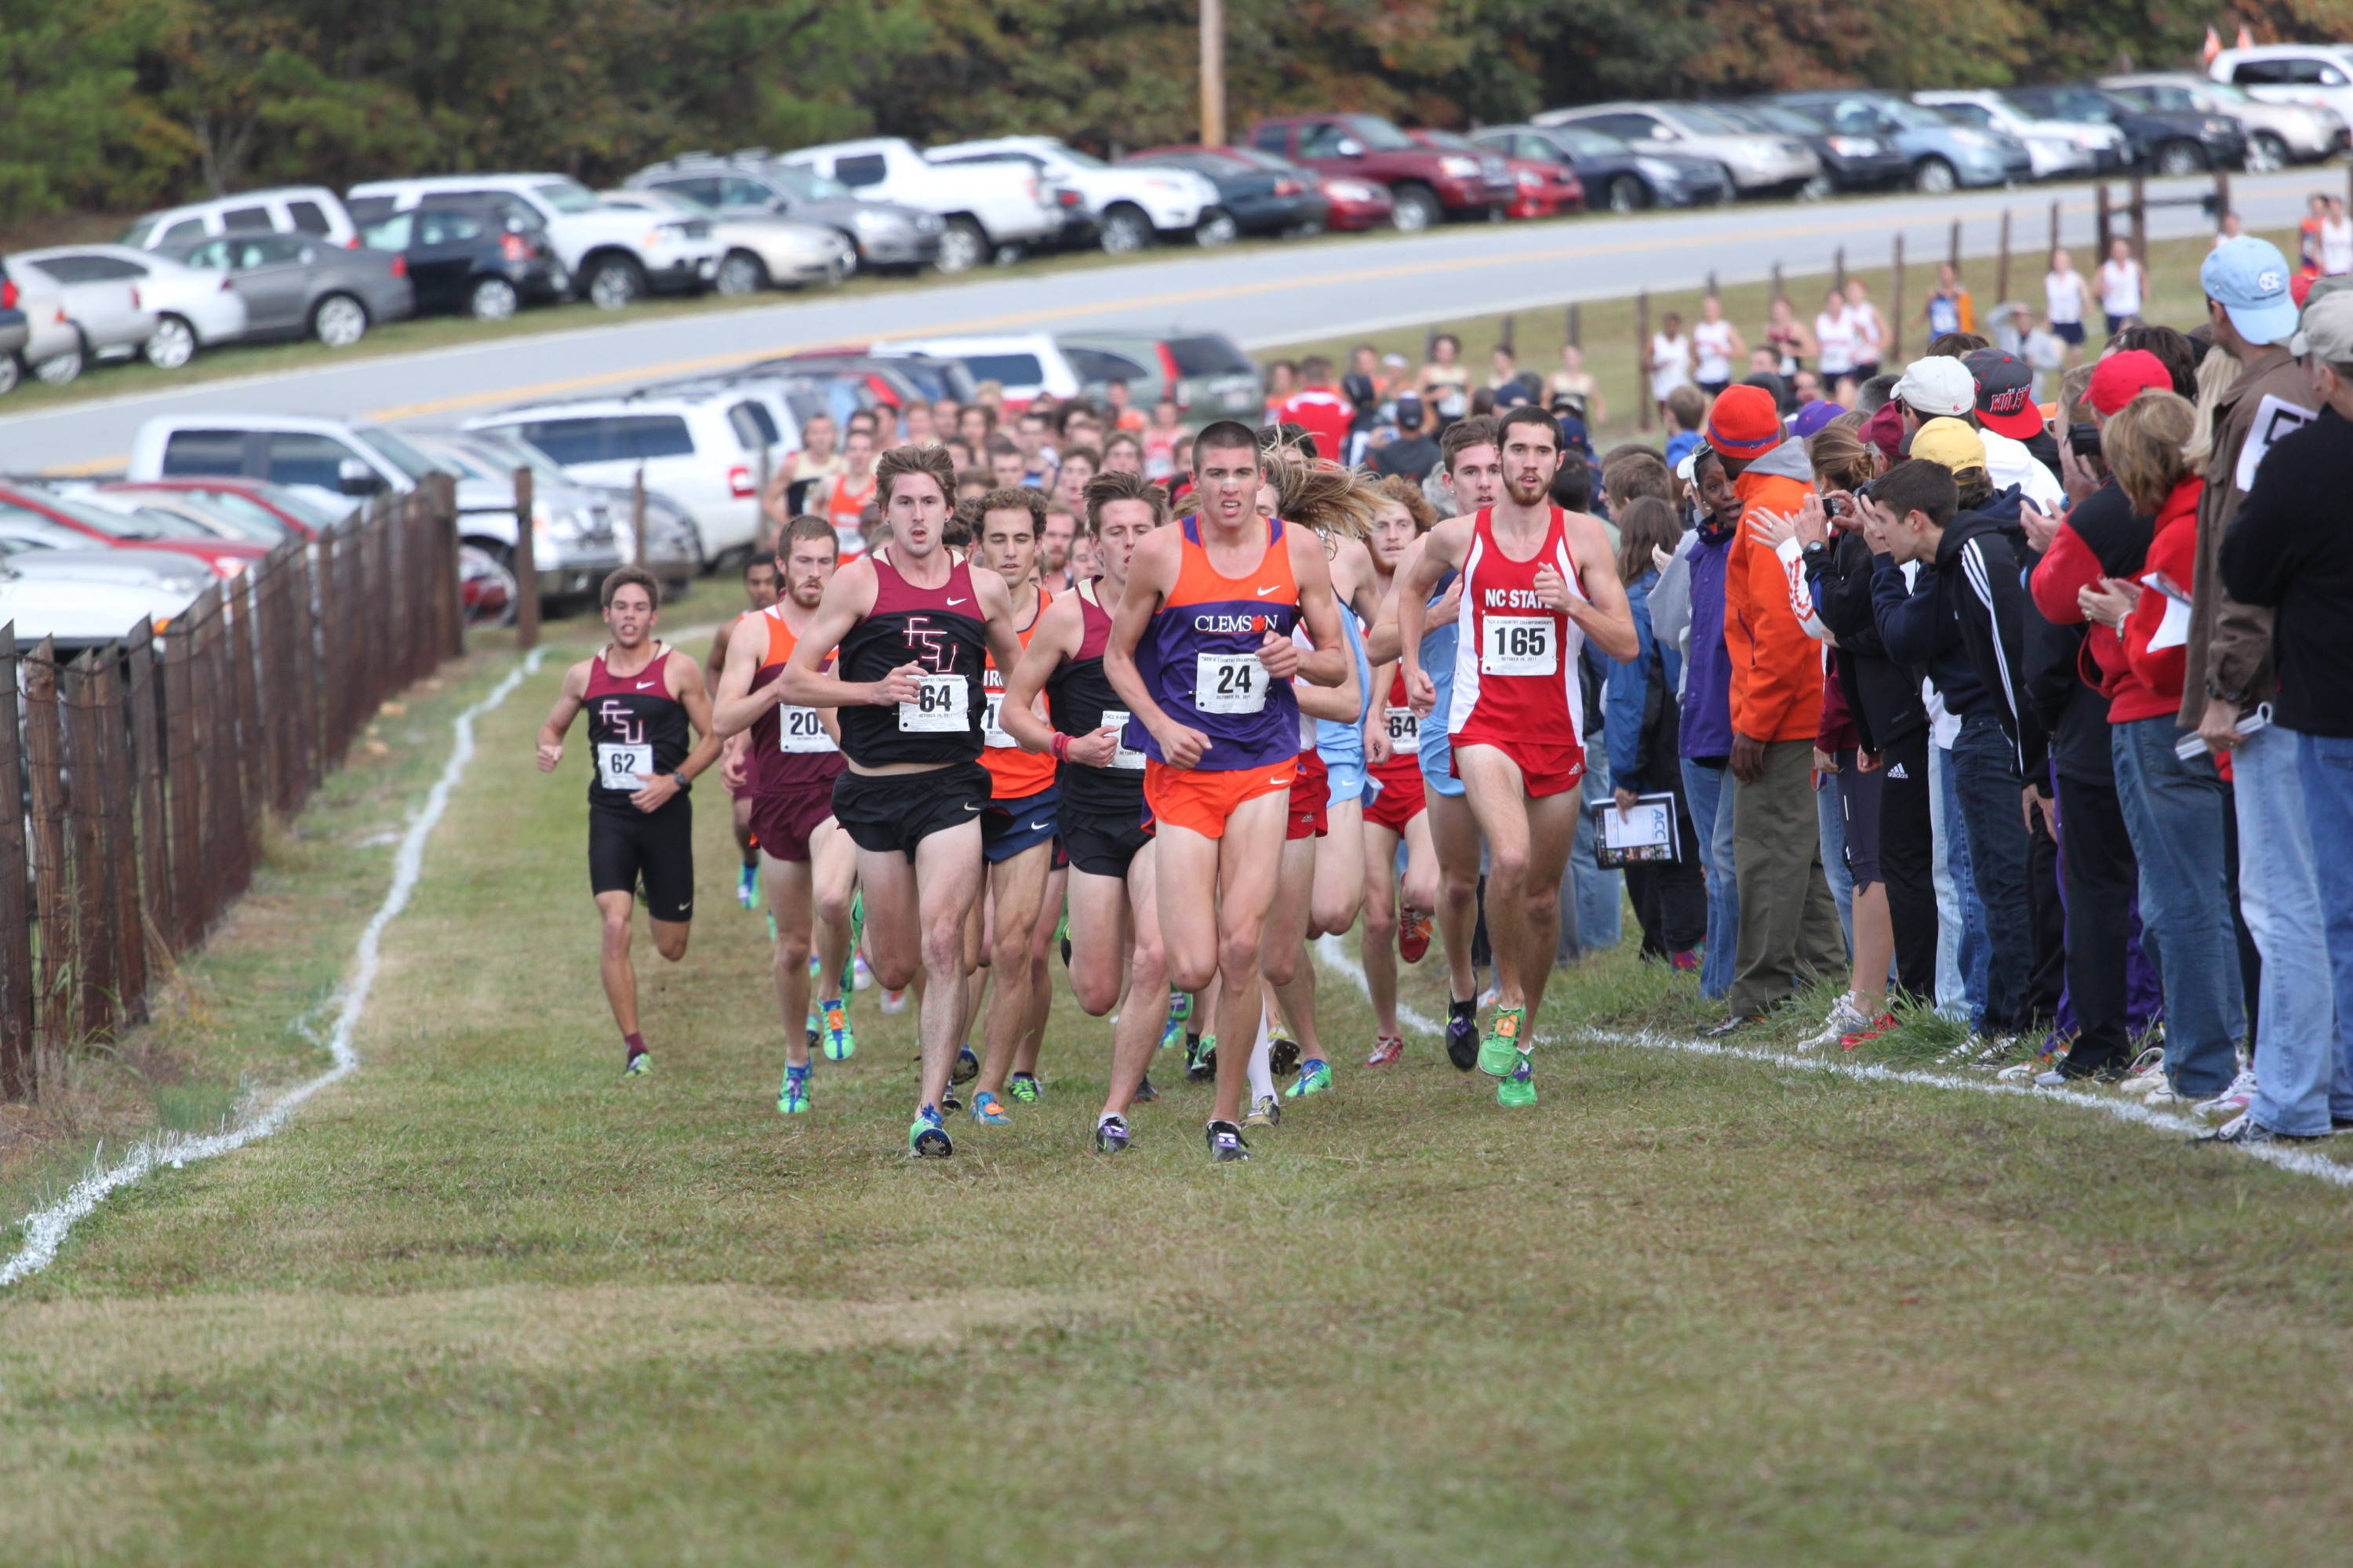 Mike Fout and the Seminoles are well-positioned heading into the two-mile mark at the ACC XC championships